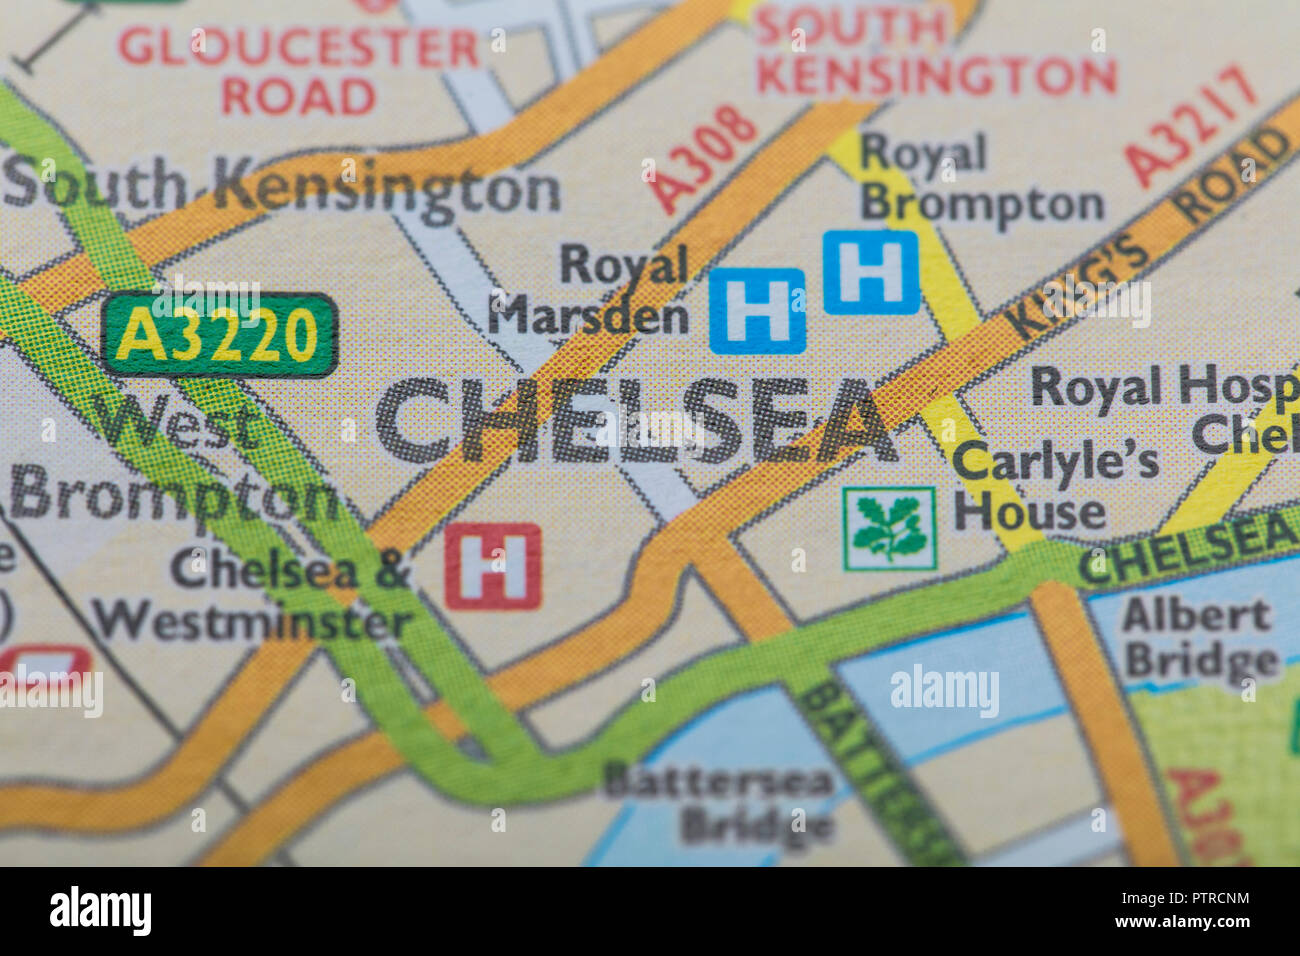 London Map Location.London Borough Of Chelsea Location Map Stock Photo 221791072 Alamy